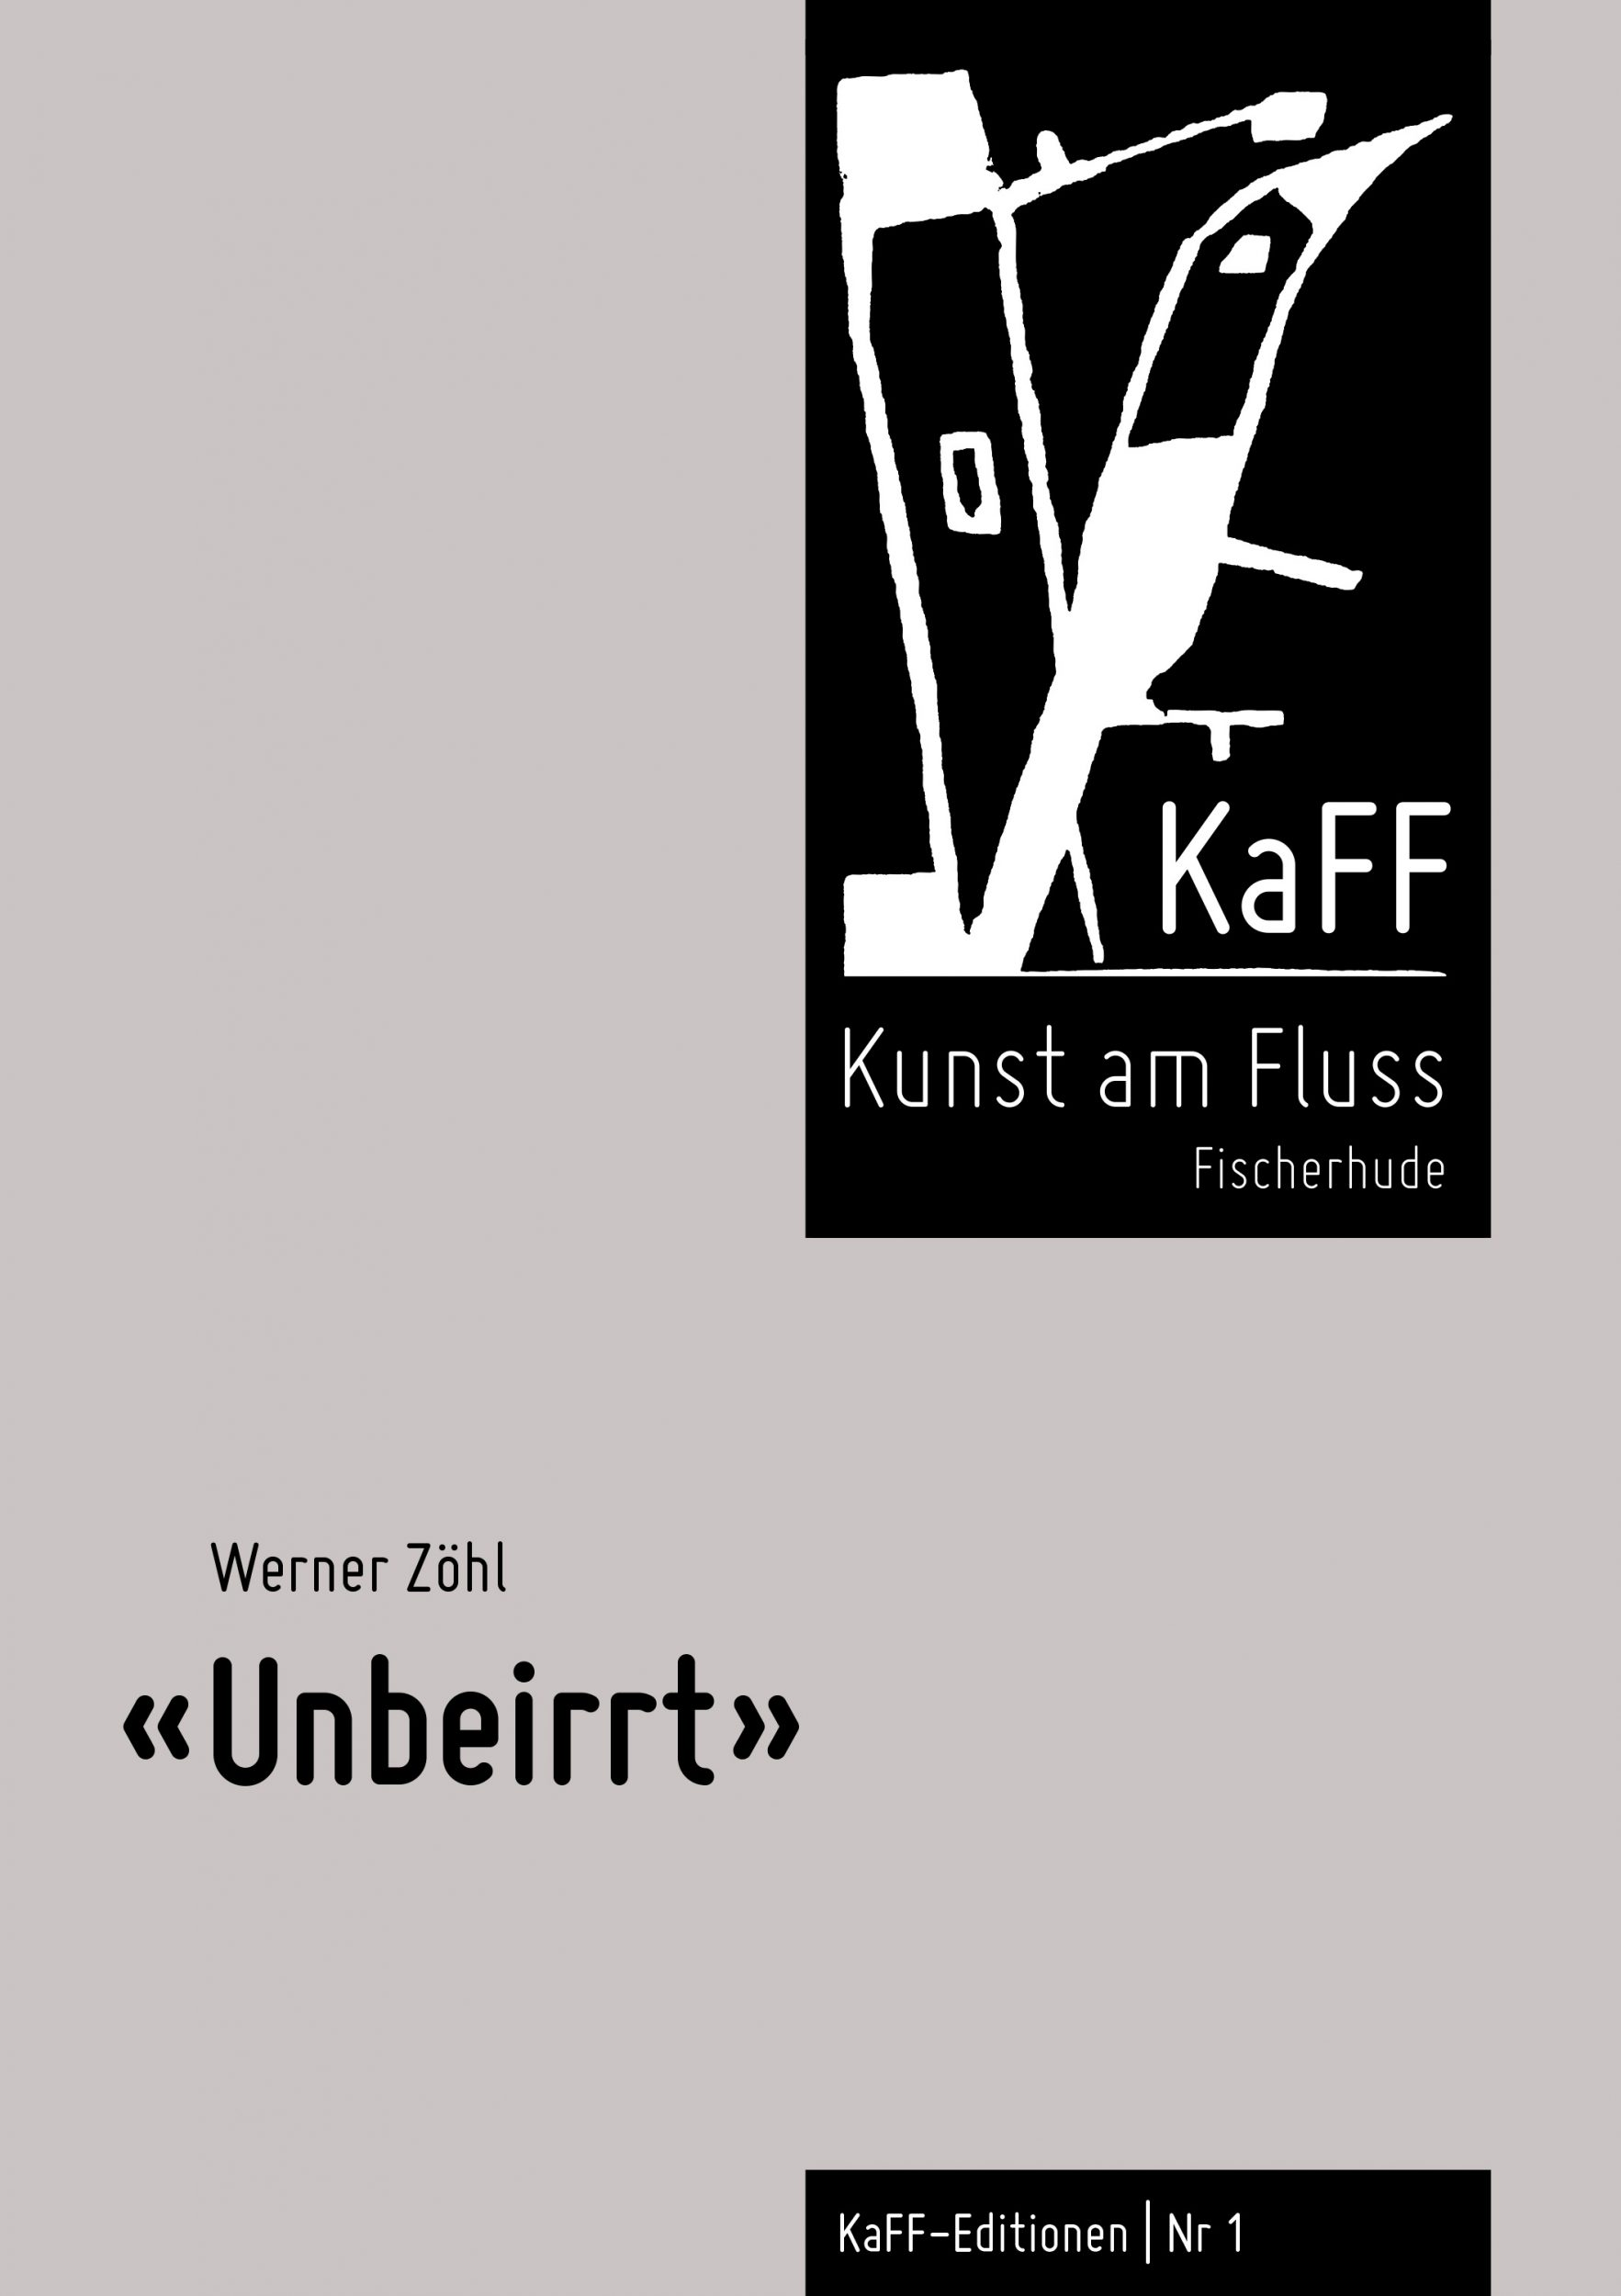 coverkaff-editionen-nr-1